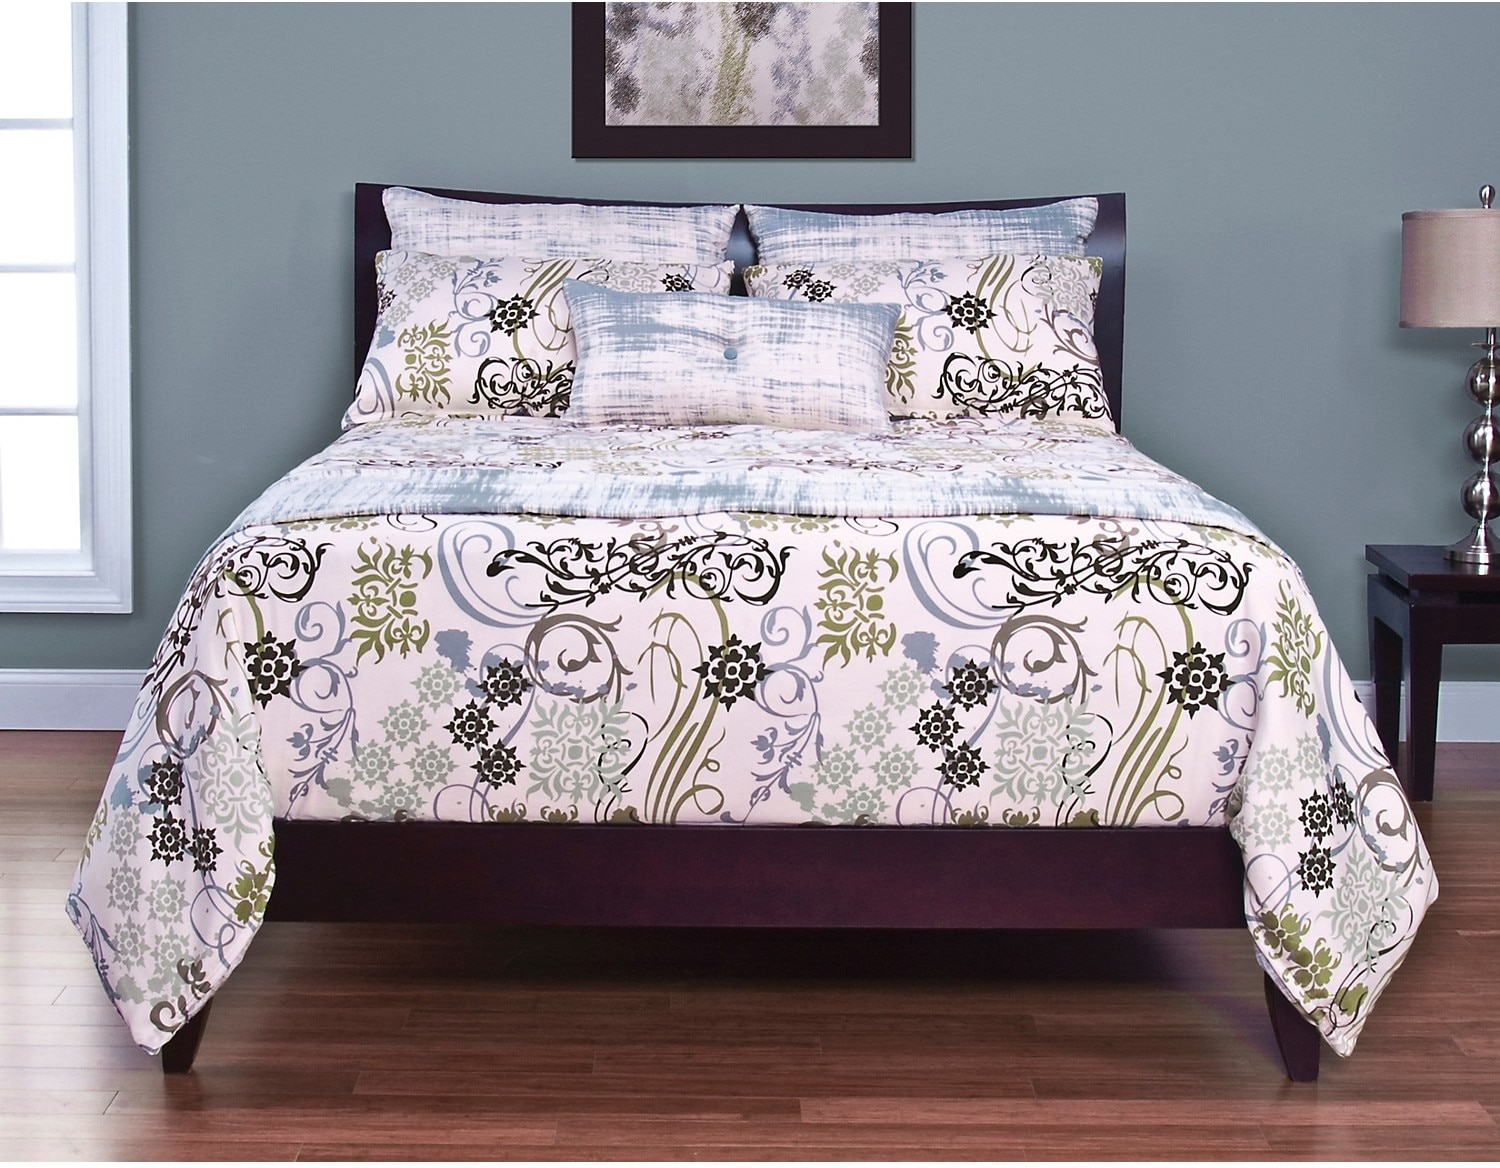 Mattresses and Bedding - Vintage Wear King Throw and 2 Shams